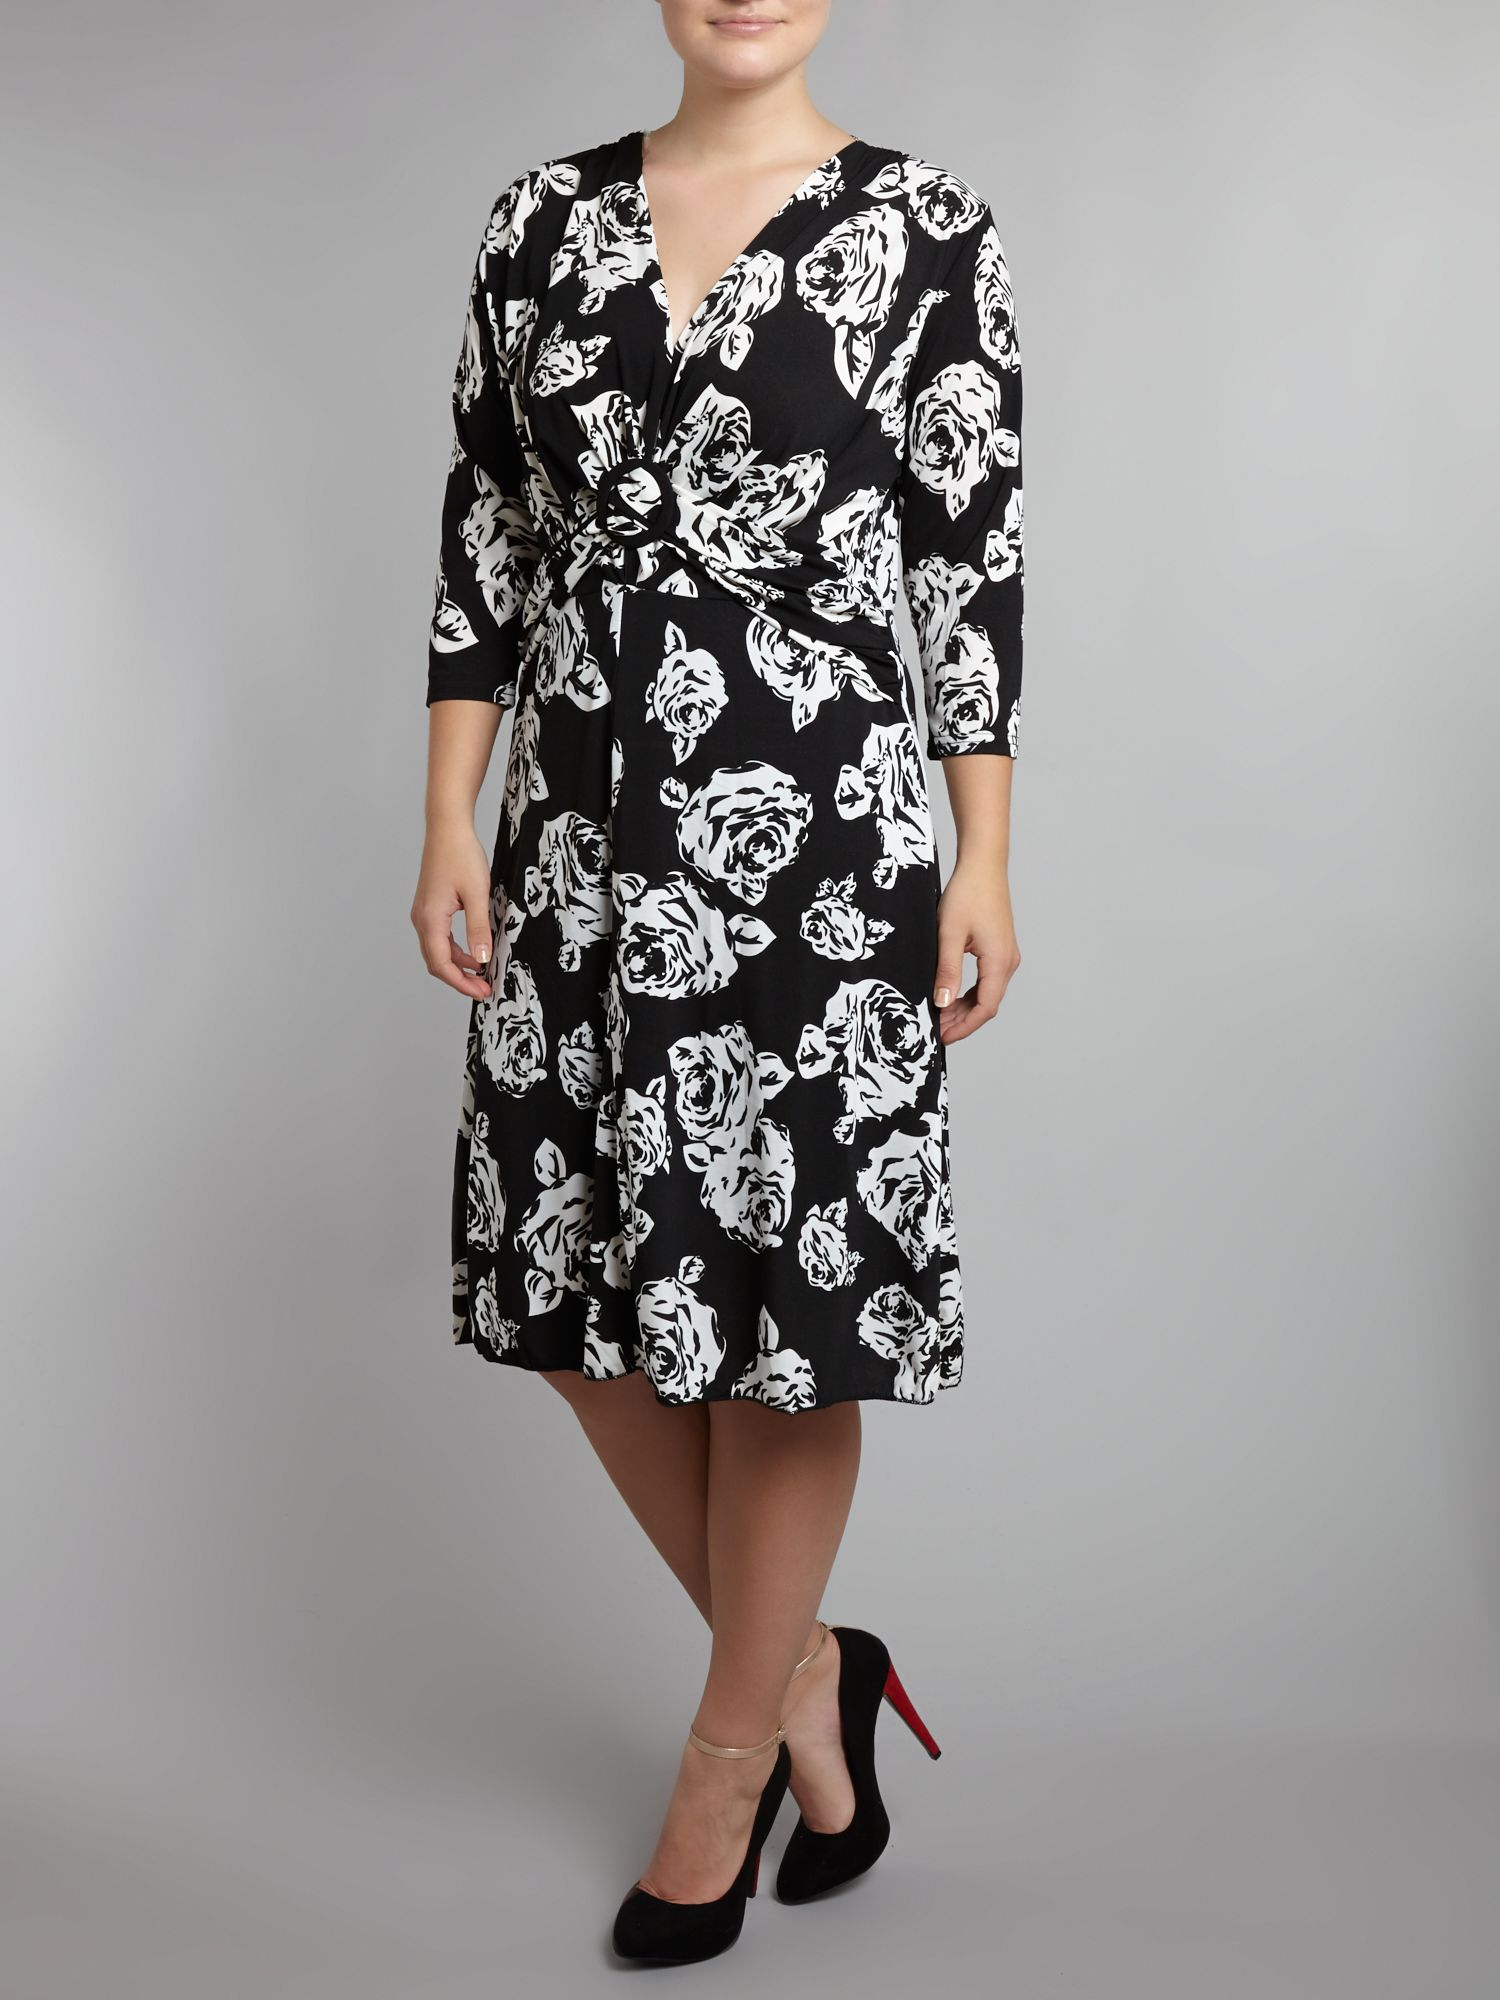 Rose print twist dress